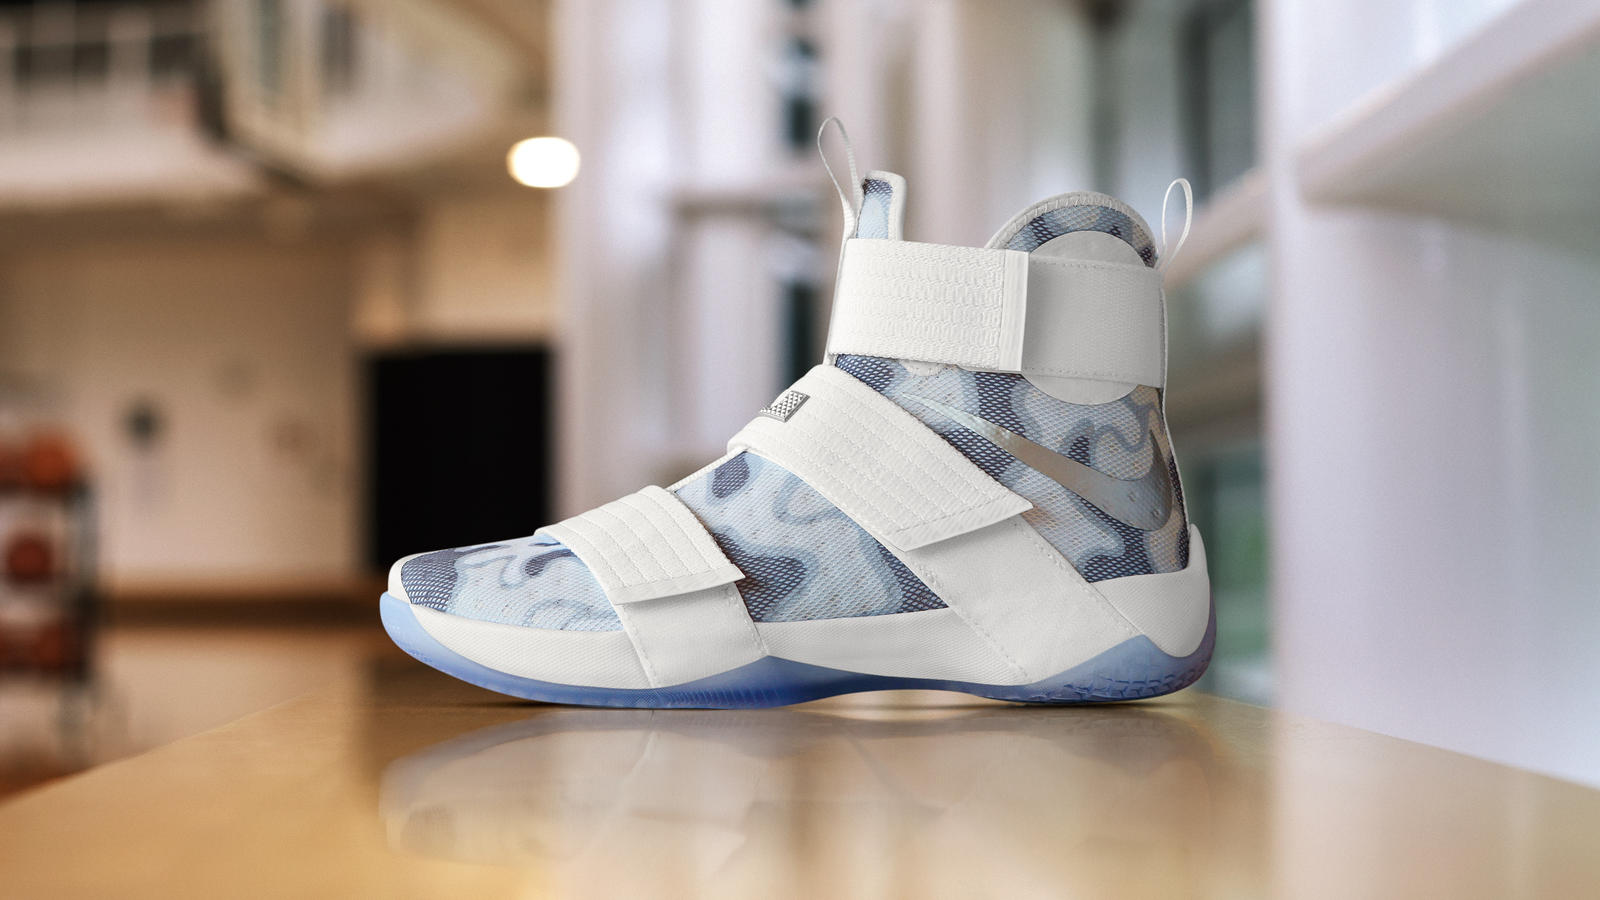 newest 65b70 a815d Nike Zoom LeBron Soldier 10 iD - Nike News